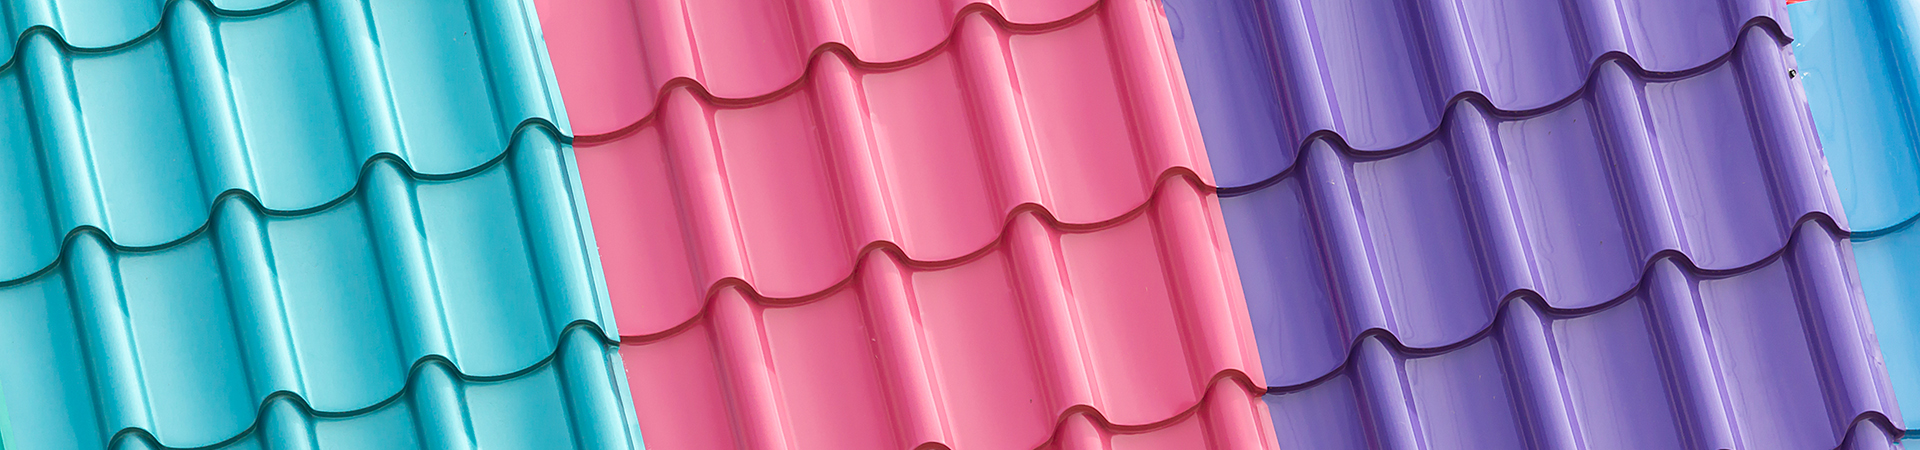 Roofing Solutions Manufacturers & Suppliers in India | HIL